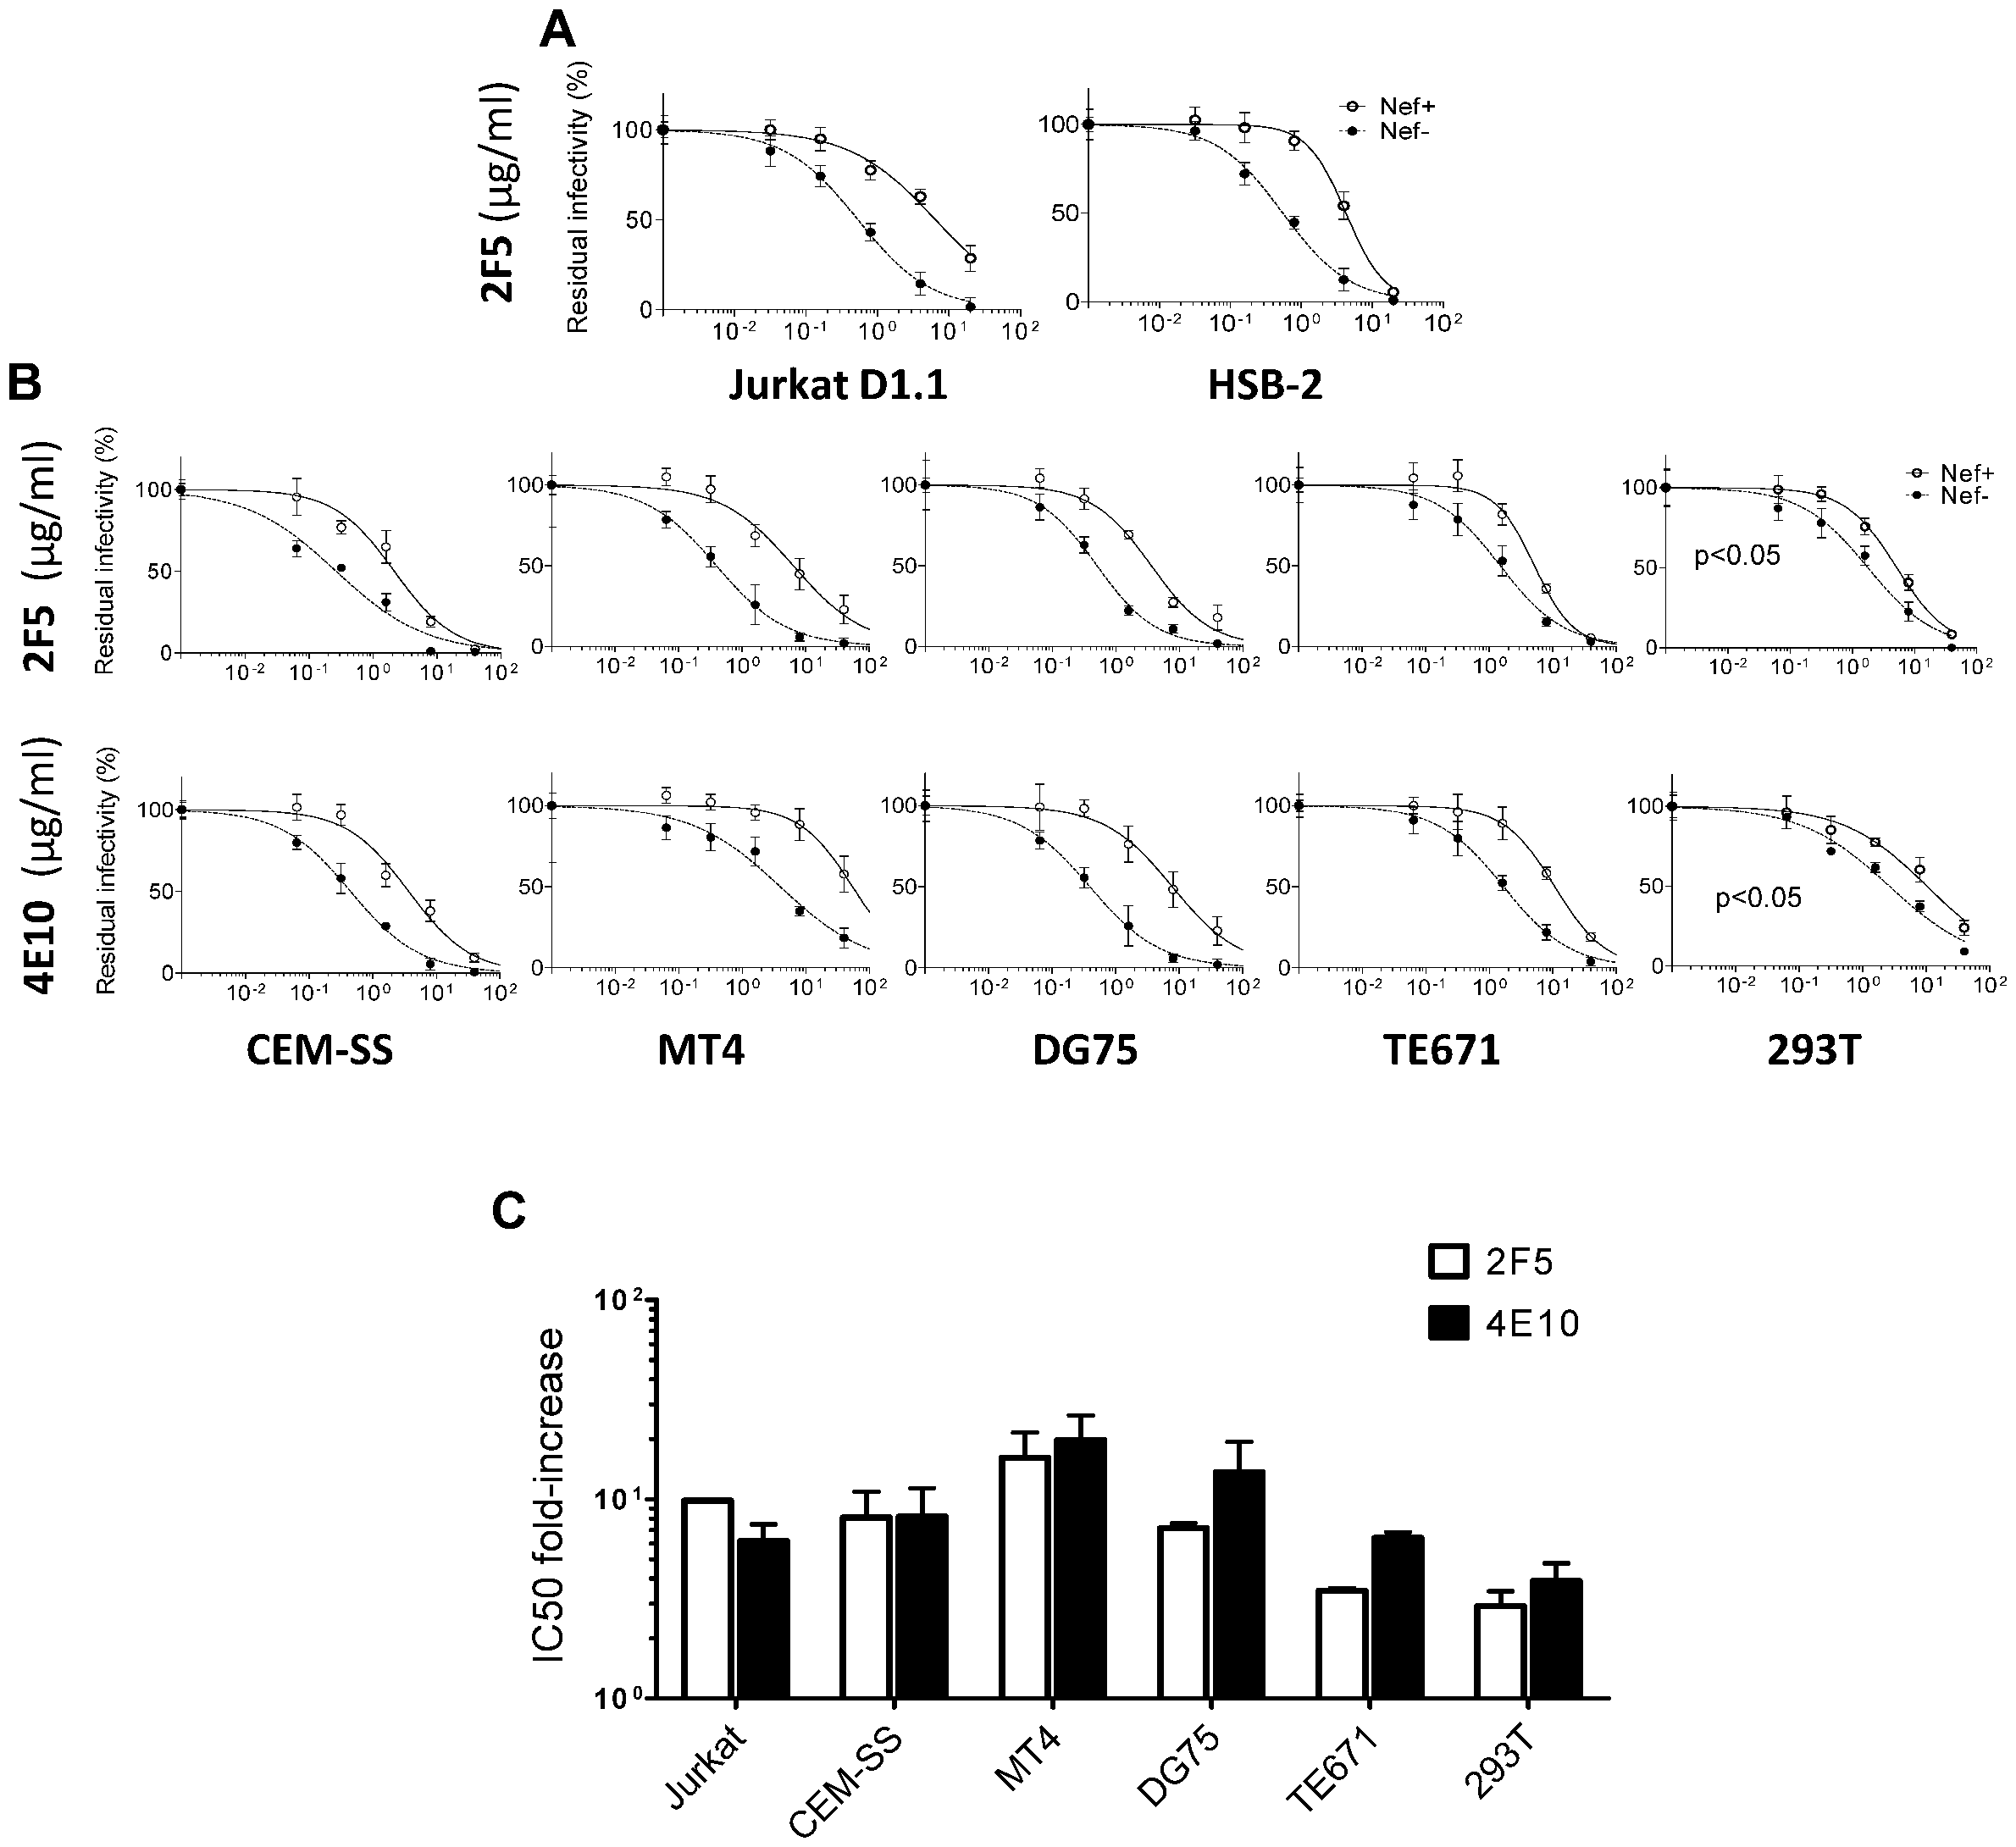 The effect of Nef on neutralization does not depend on the presence of CD4 in producer cells and is observed with HIV-1 derived from various cell lines.